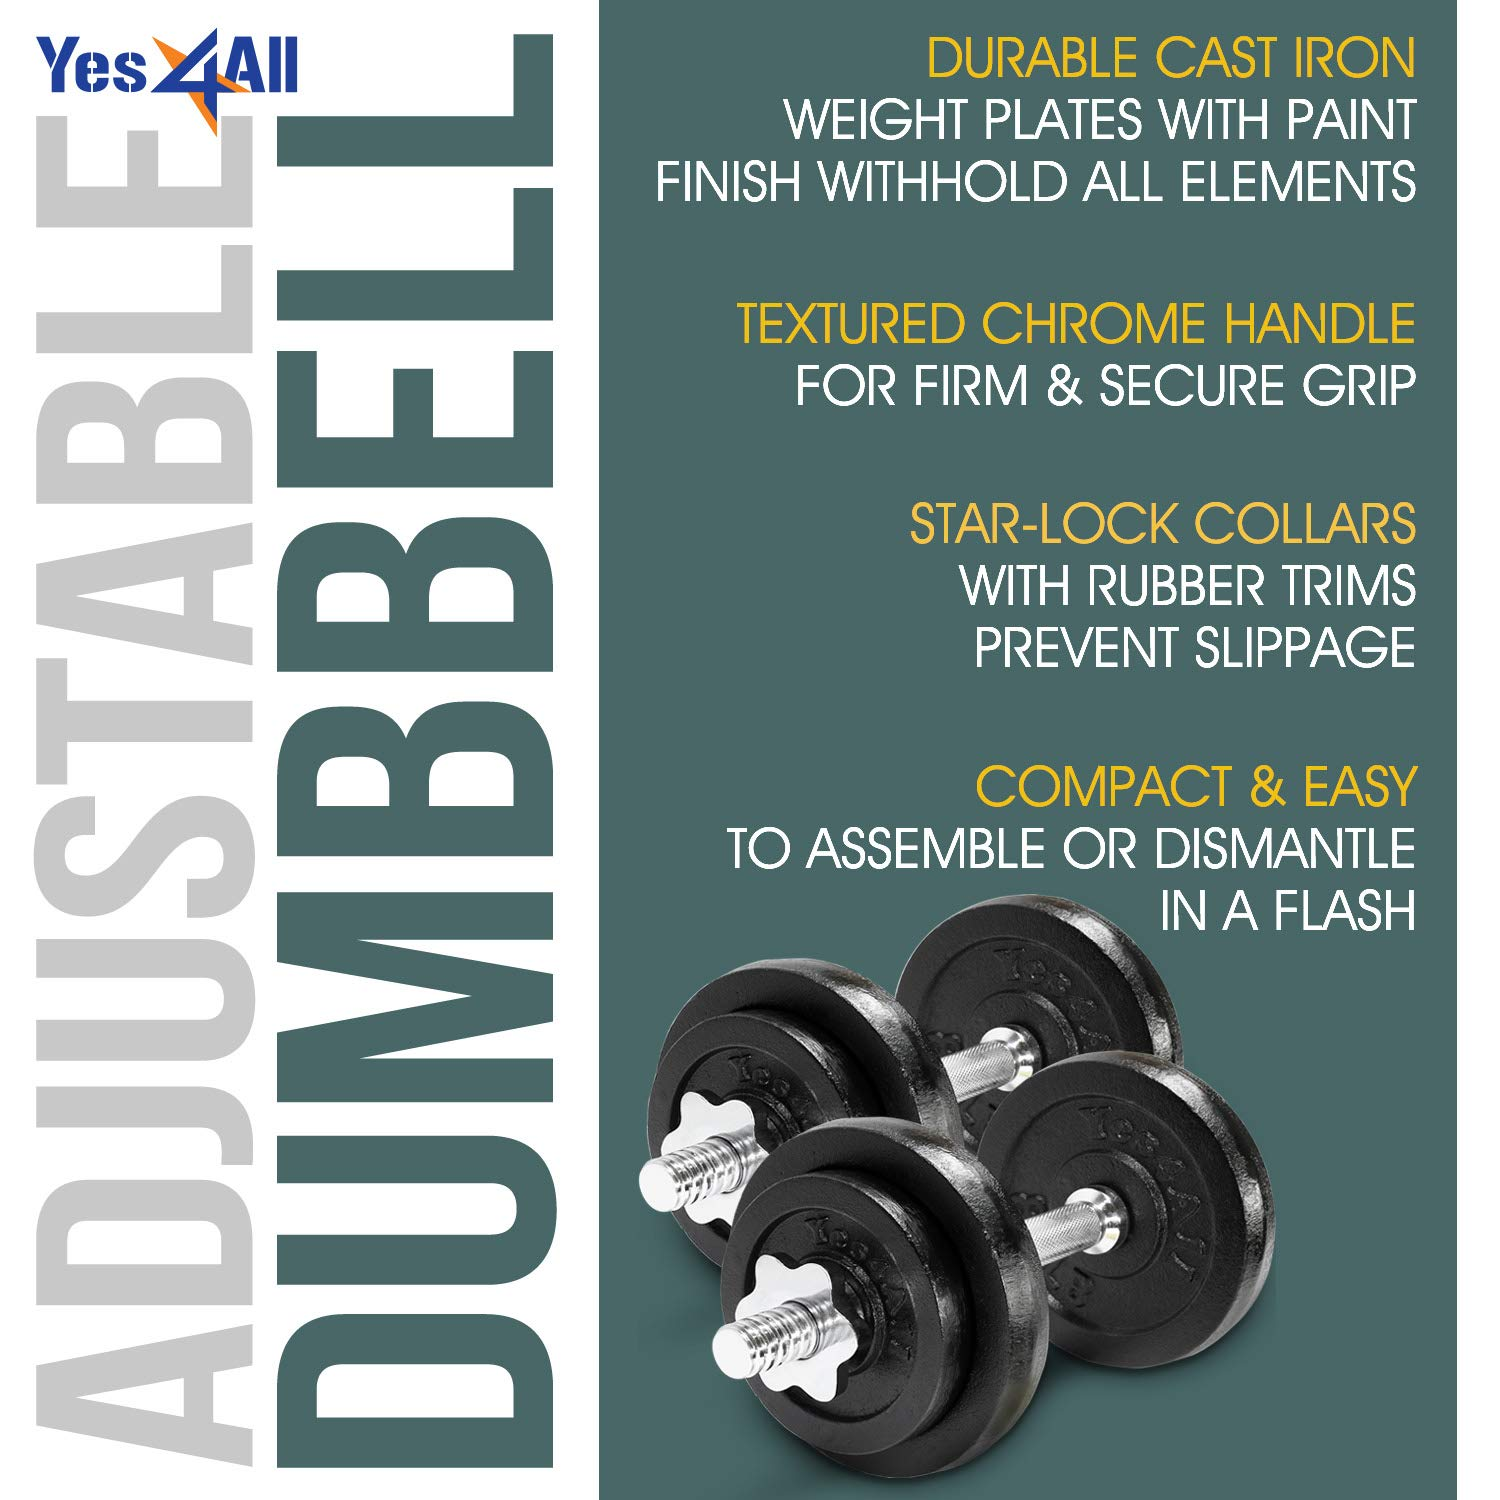 105 to 200 lbs Yes4All Adjustable Dumbbells 40 60 50 52.5